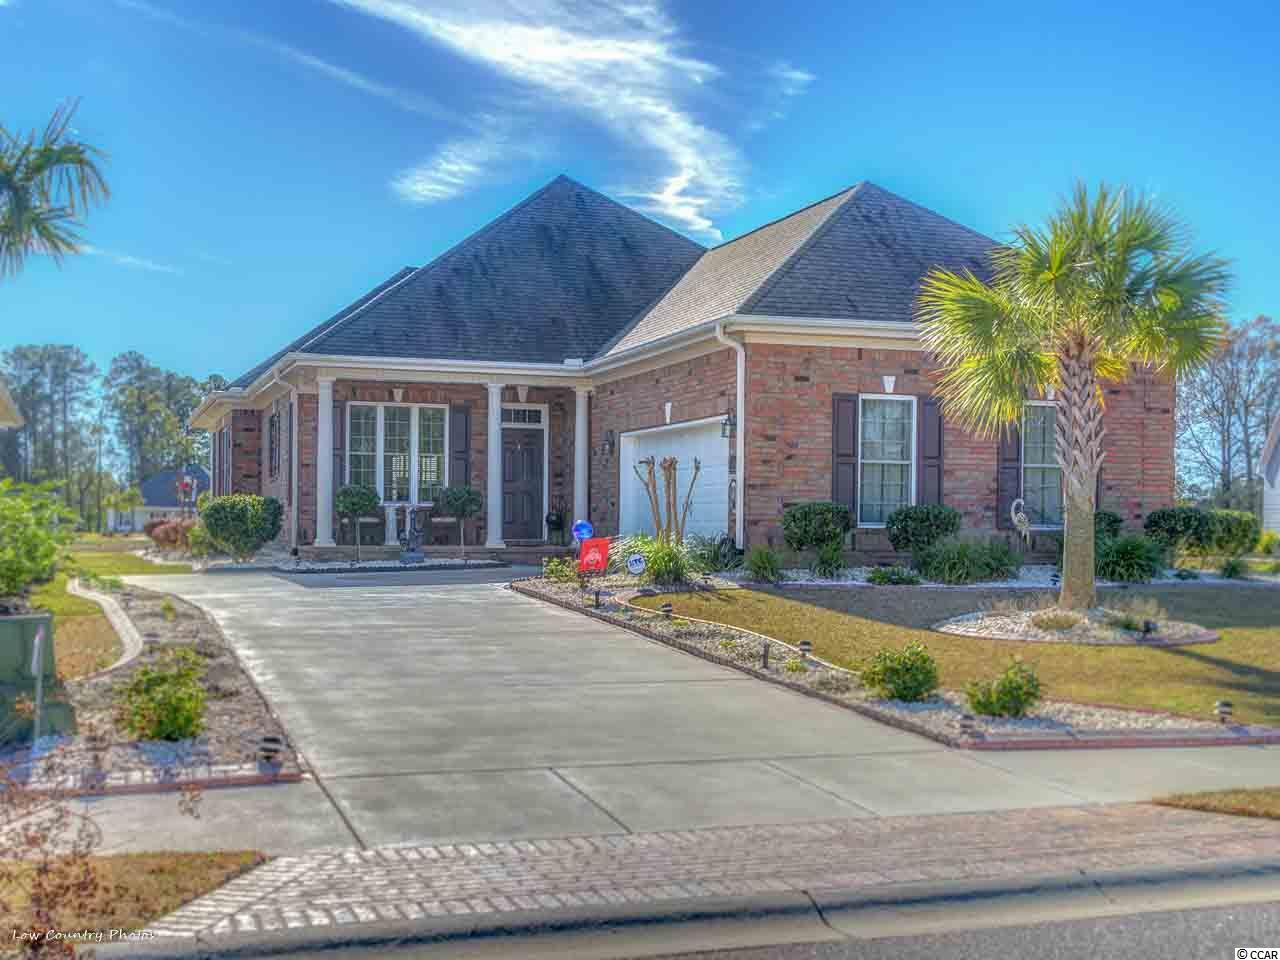 Incredible opportunity to own a wonderful custom built home in the highly sought after secluded and prestigious community of Wild Wing Plantation. This 3-bed, 2.5-bath open and airy beauty on .25 acre cul-de-sac lot like new home has top of the line features including but not limited to; custom tile work though-out, top end stainless steel appliances, high end security system, surround sound in multiple rooms for music, vaulted and tray ceilings, quartz counter-tops and newly installed Natural Gas for range and outdoor grill and much more. Large Master Bedroom Suite with 2 walk-in closets, spacious Jack & Jill bathroom, Gourmet Kitchen, Formal Dining Room, Beautiful chandelier, Electric Fireplace (can easily be hooked up to Natural Gas), Ceiling Fans throughout, a front porch, and large Screened-in Back Porch with additional patio, big back yard for possible pool or entertaining, 2 car side load garage, tons of attic space, new hot water tank with on demand hot water circulator , Mature landscaping with new flower beds and curbing. Gutters installed recently. This home is in pristine condition and would be the perfect home for anyone looking for a great neighborhood and quality community amenities and activities to include: Several Lakes, a large dock for your boat, 2 Pools, Children's area with multiple water features, hot tub, Tennis and Pickle Ball Courts, Basketball Courts, Exercise Room and of course Wild Wing's Championship 18 and 9 hole Golf Courses with onsite Clubhouse and onsite restaurant. Close to shopping, entertainment, restaurants, beach and all that the Grand Strand offers! Put this home #1 on your list to see it won't last long.